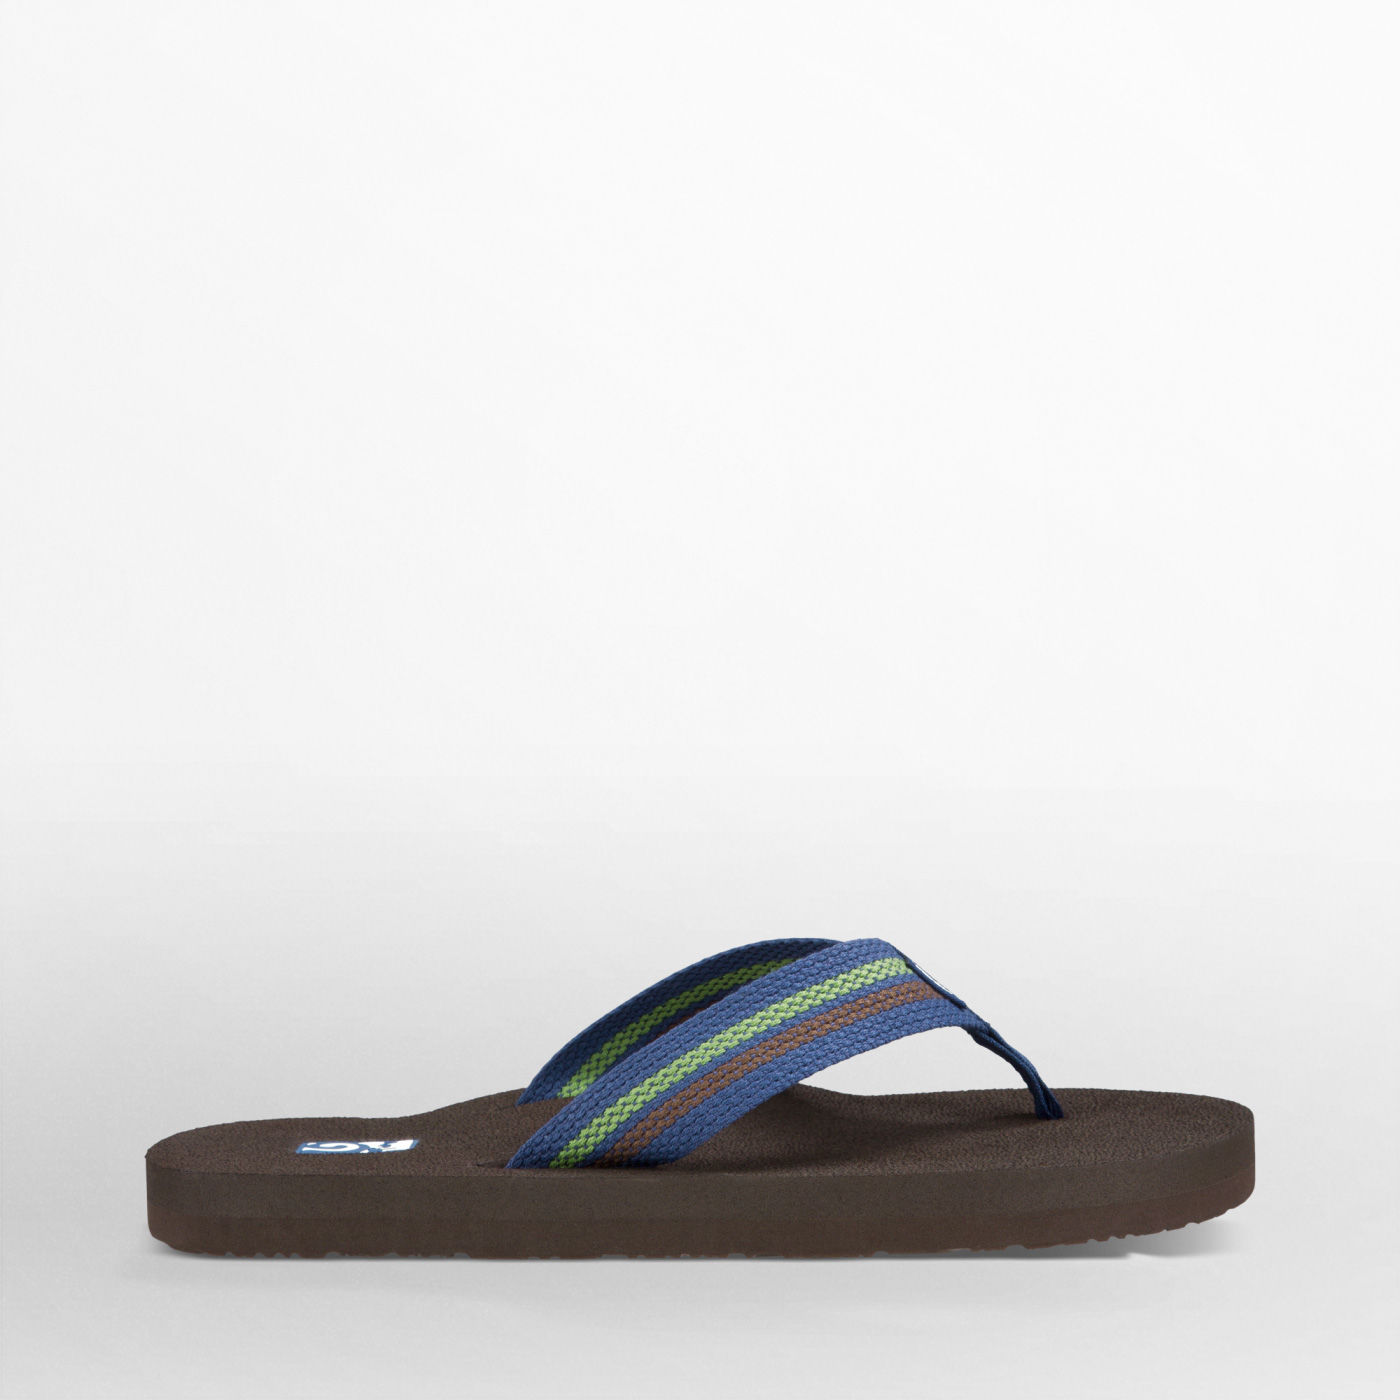 Teva® Men's Mush II Canvas Sandals | Teva.com